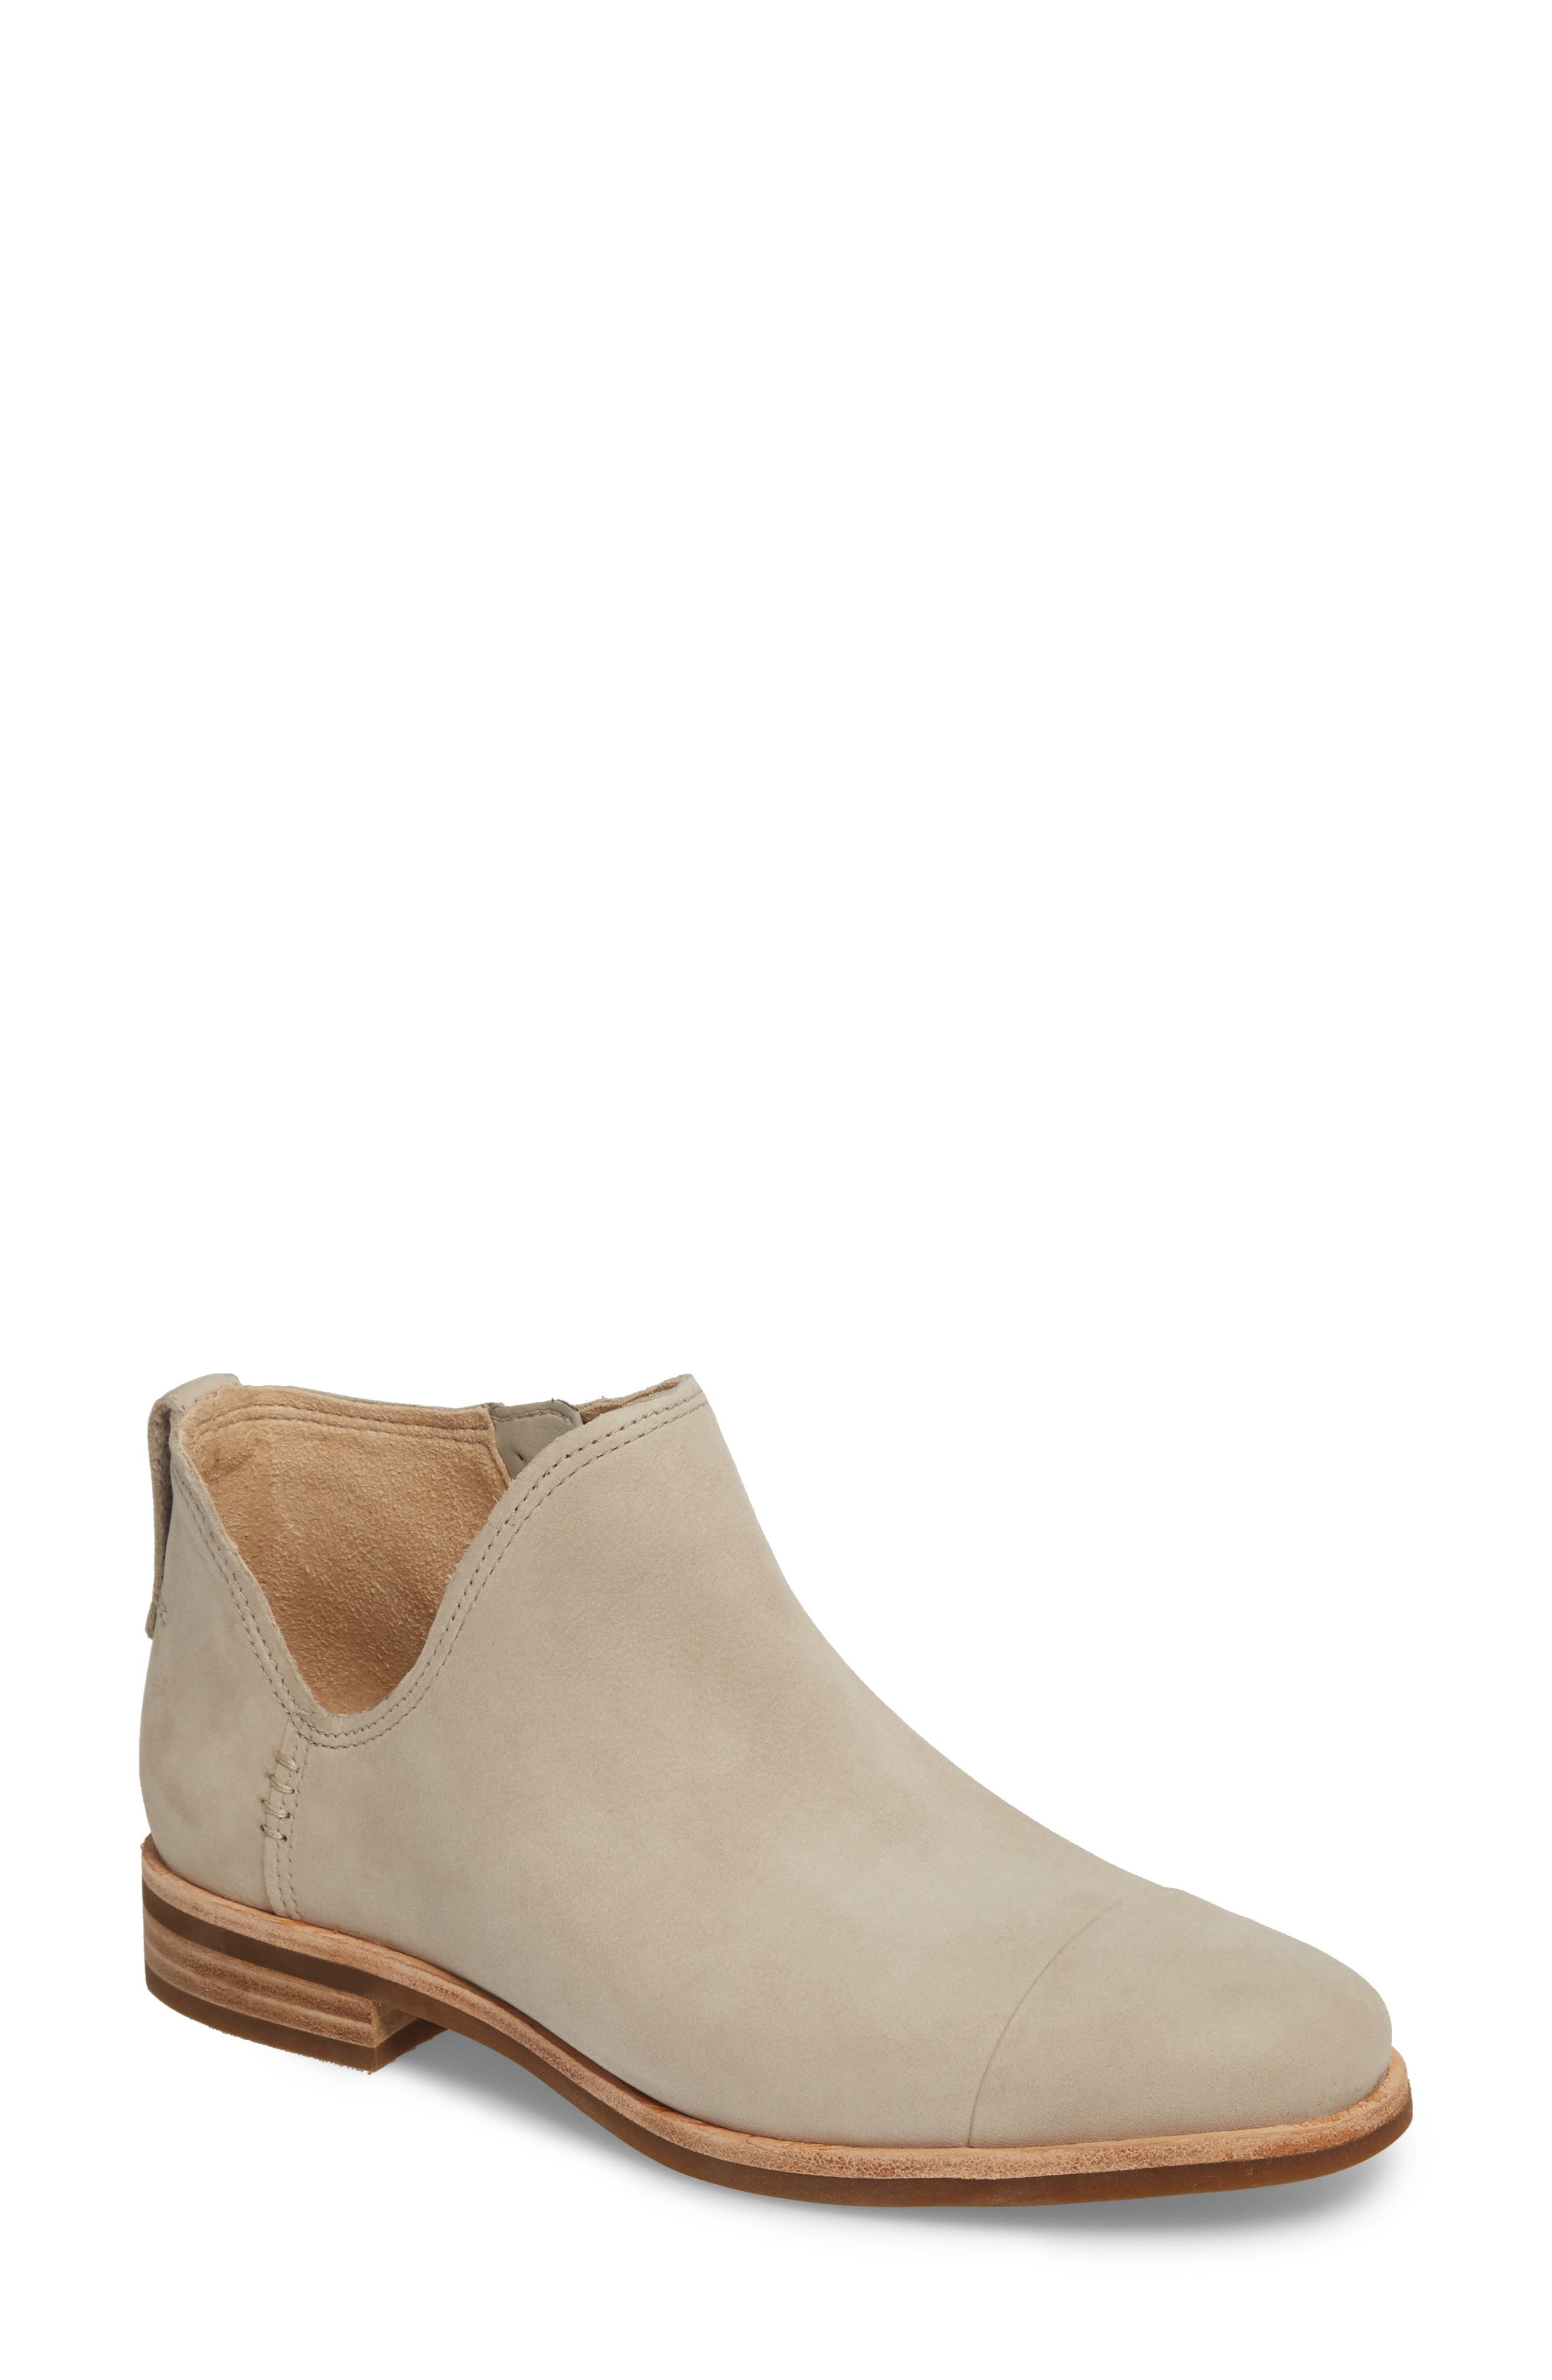 Somers Falls Short Ankle Bootie,                             Main thumbnail 1, color,                             Light Taupe Nubuck Leather